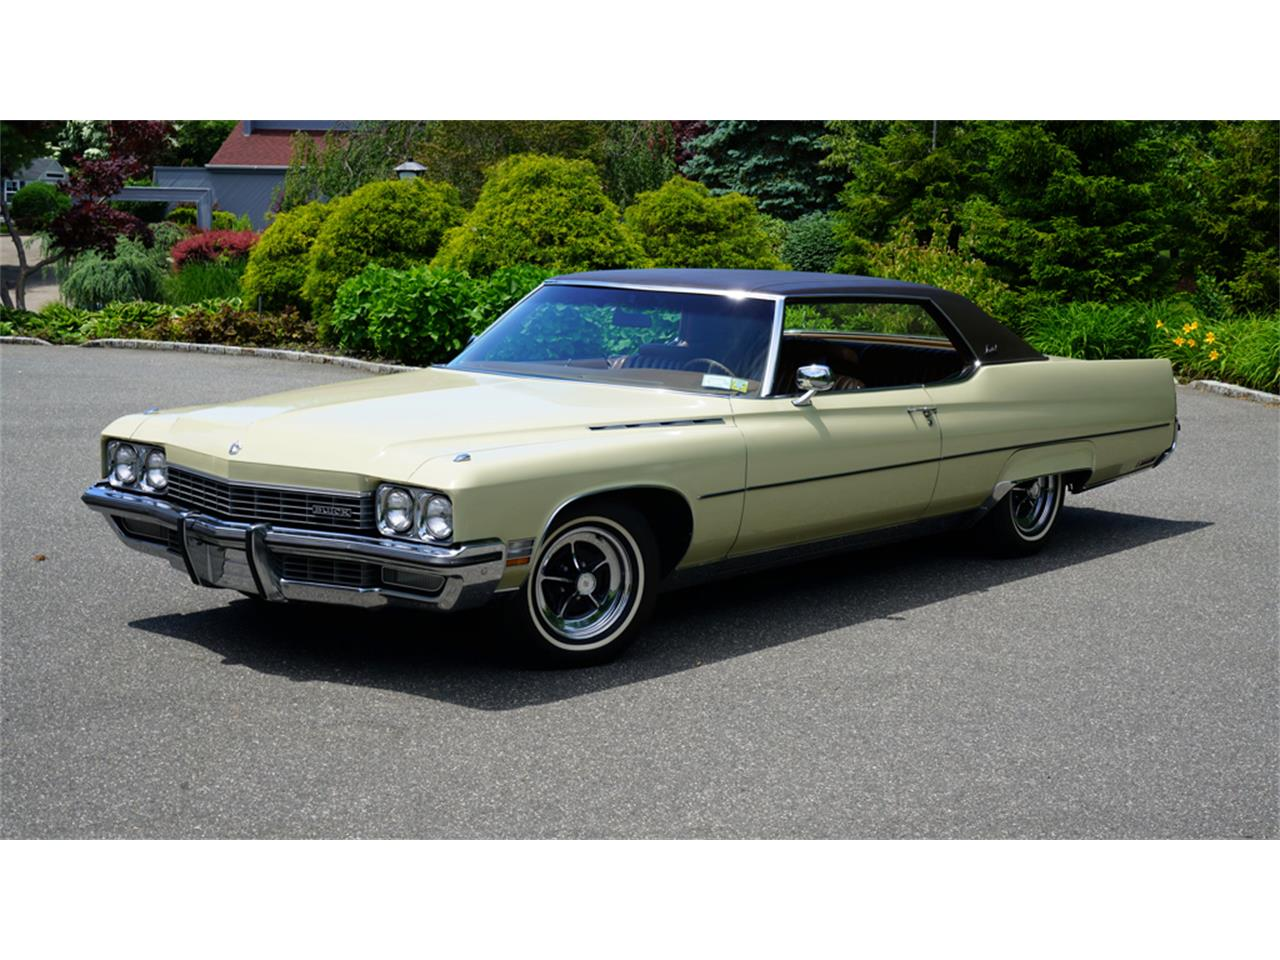 Large Picture of '72 Buick Electra 225 located in Old Bethpage New York - $32,500.00 Offered by Fiore Motor Classics - QAJE